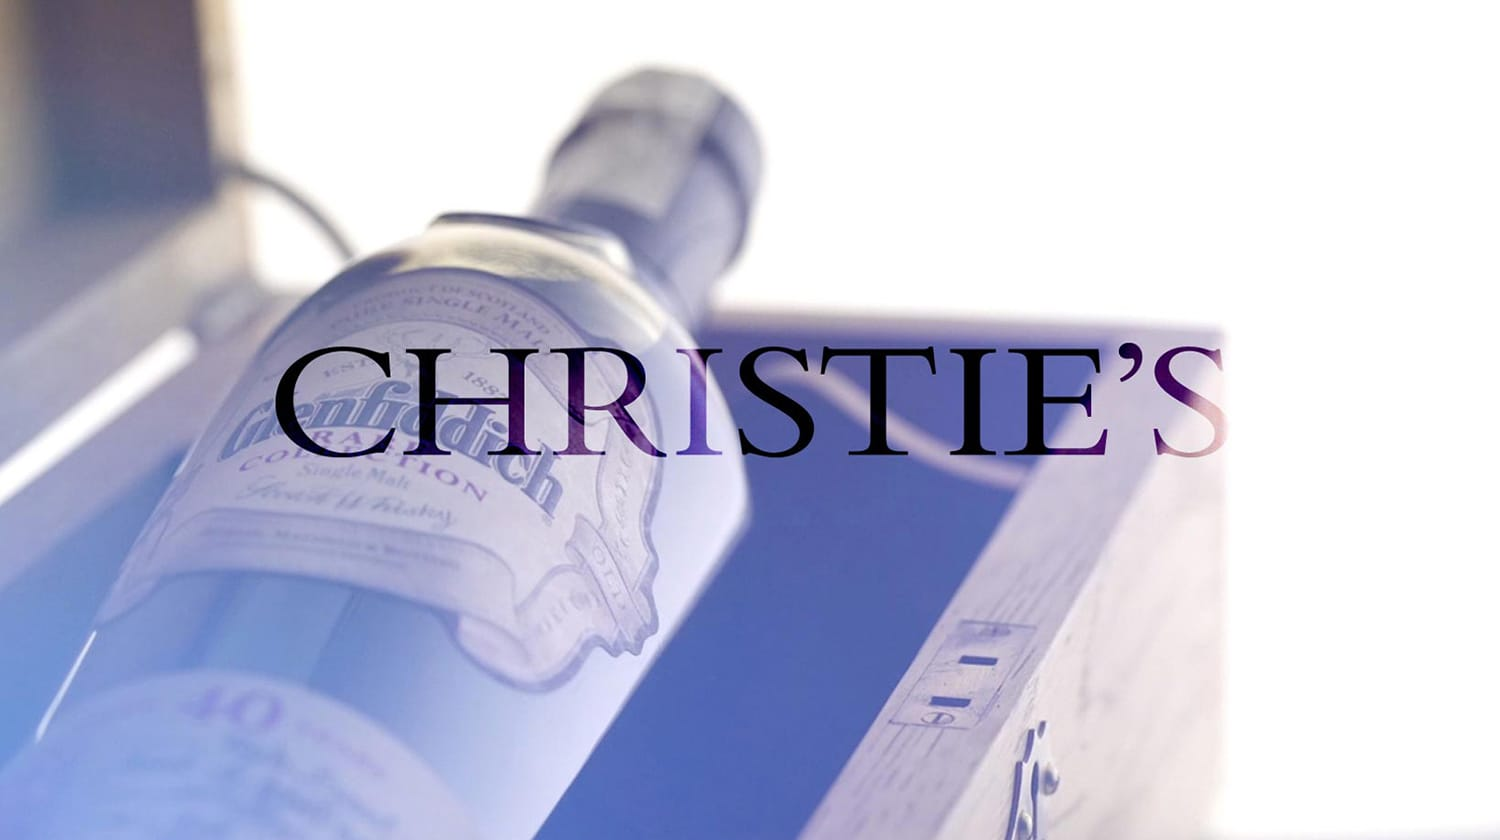 CHRISTIE'S Finer Things